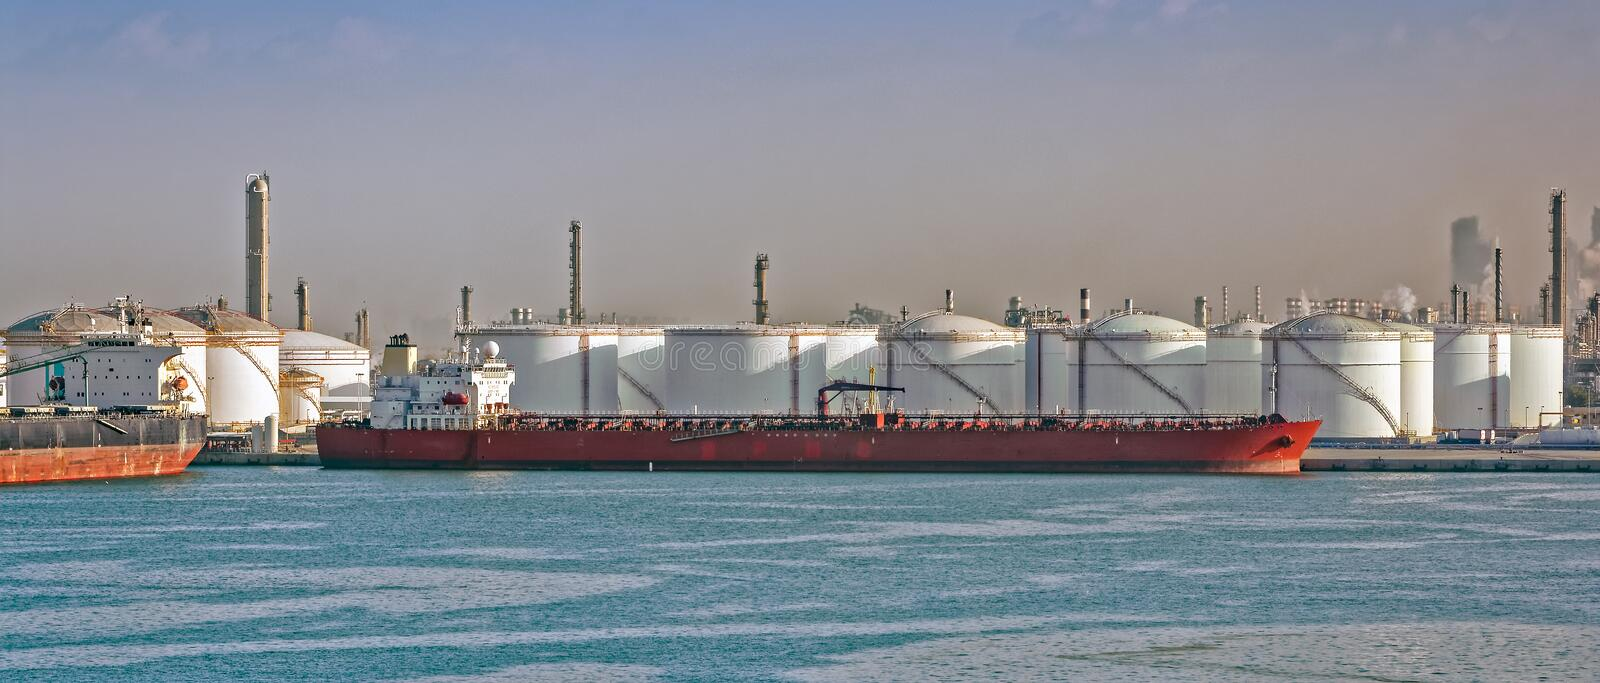 Loading oil supertanker stock photography